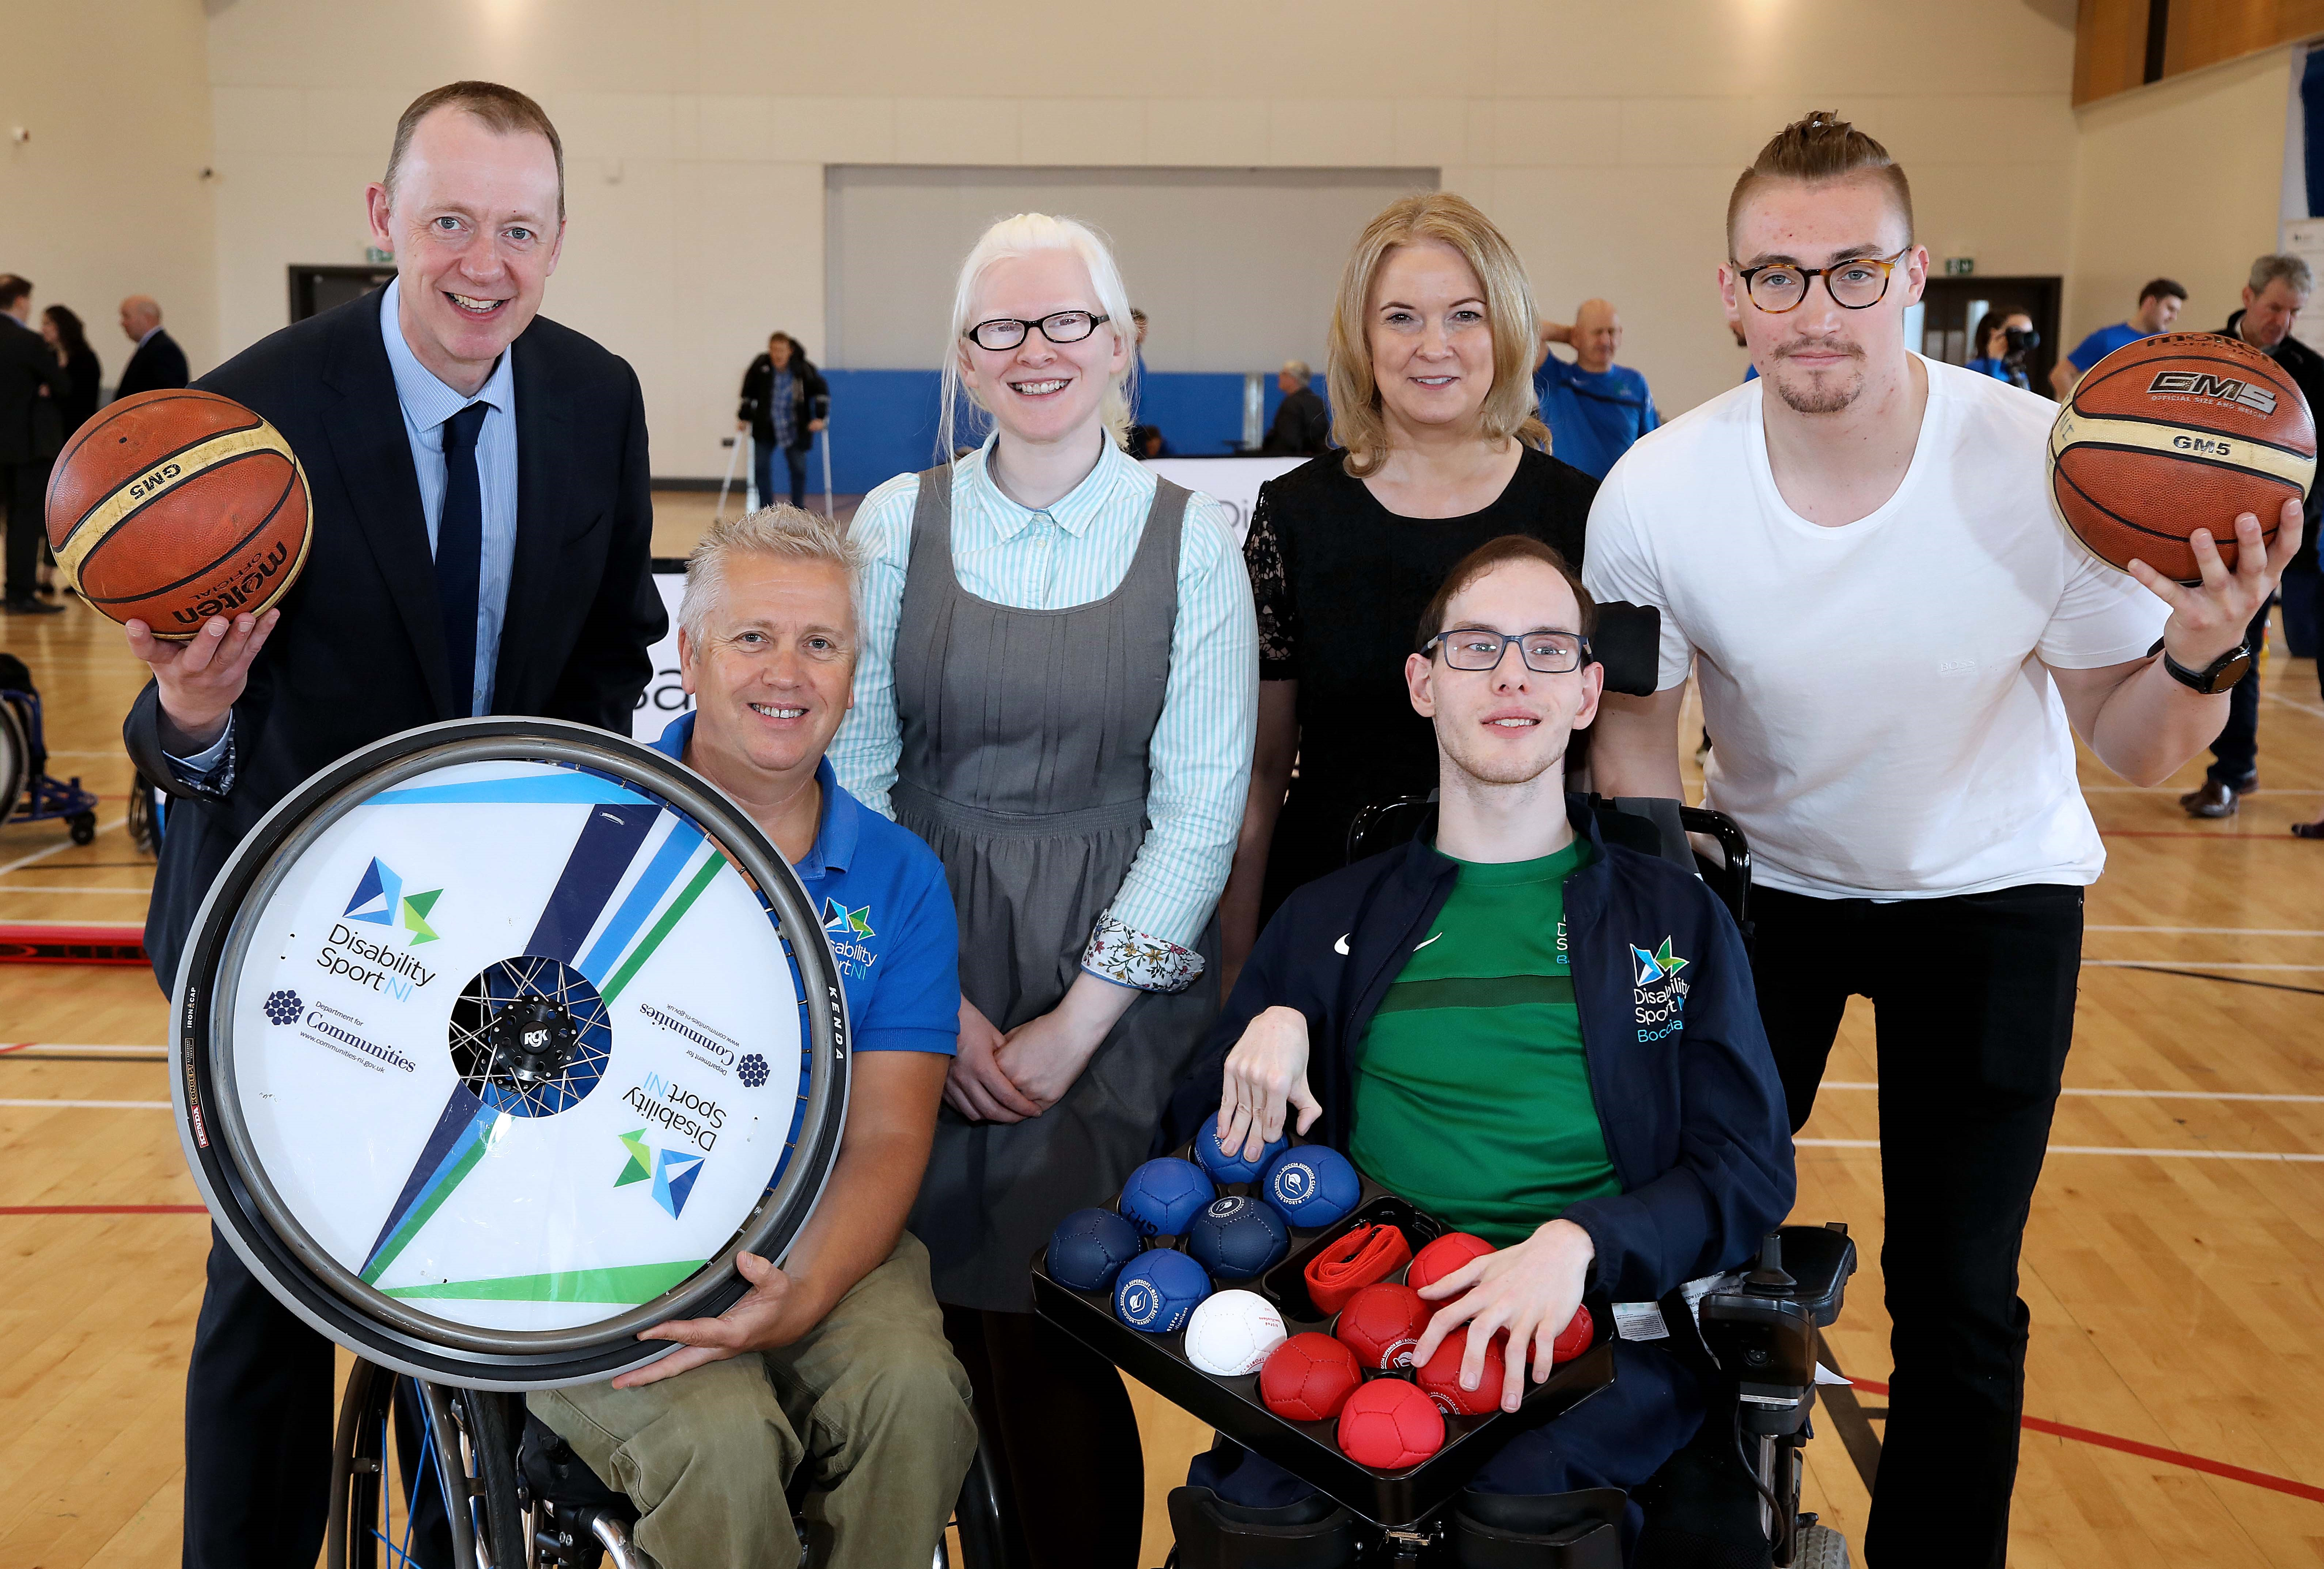 Image shows Kevin O'Neill, Aubrey Bingham, Kelly Gallagehrr MBE, Darina Armstrong and Ross Davidson holding basketballs